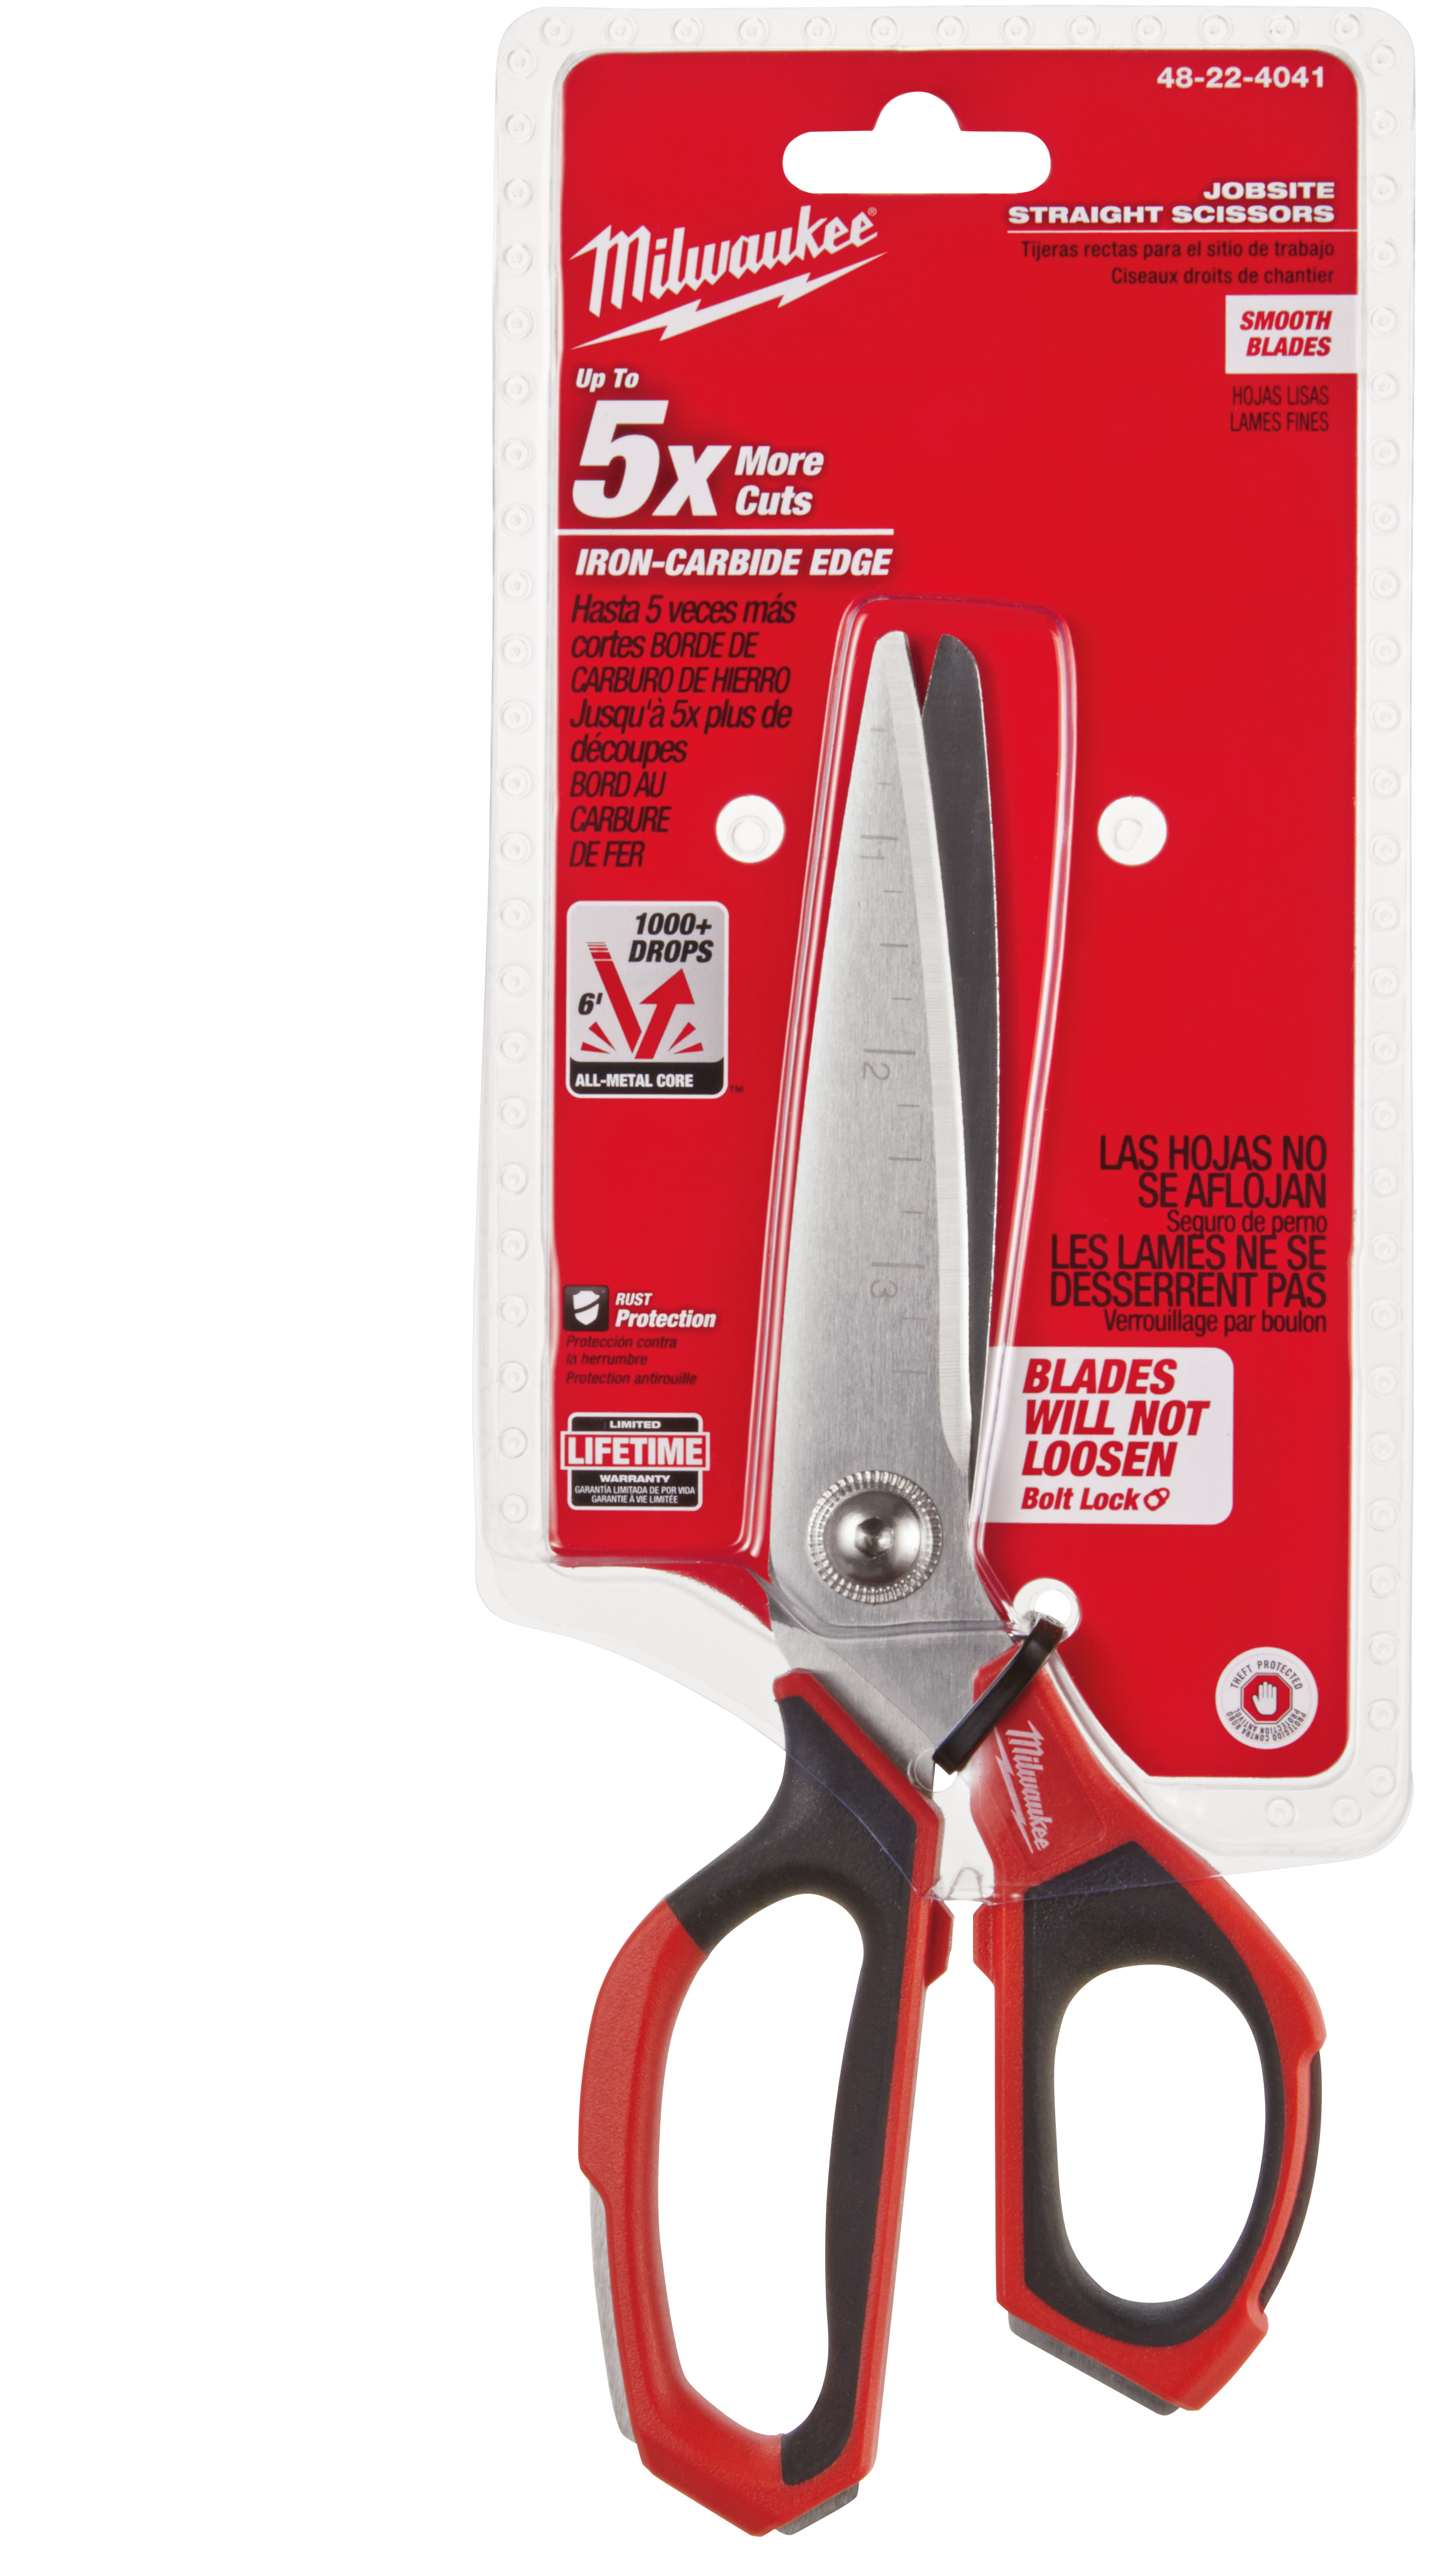 Wiss® 175E Electrician's Scissor, 1-3/4 in L of Cut, 5-1/4 in OAL, Sharp Tip, Drop Forged Solid Steel Blade, Steel Handle